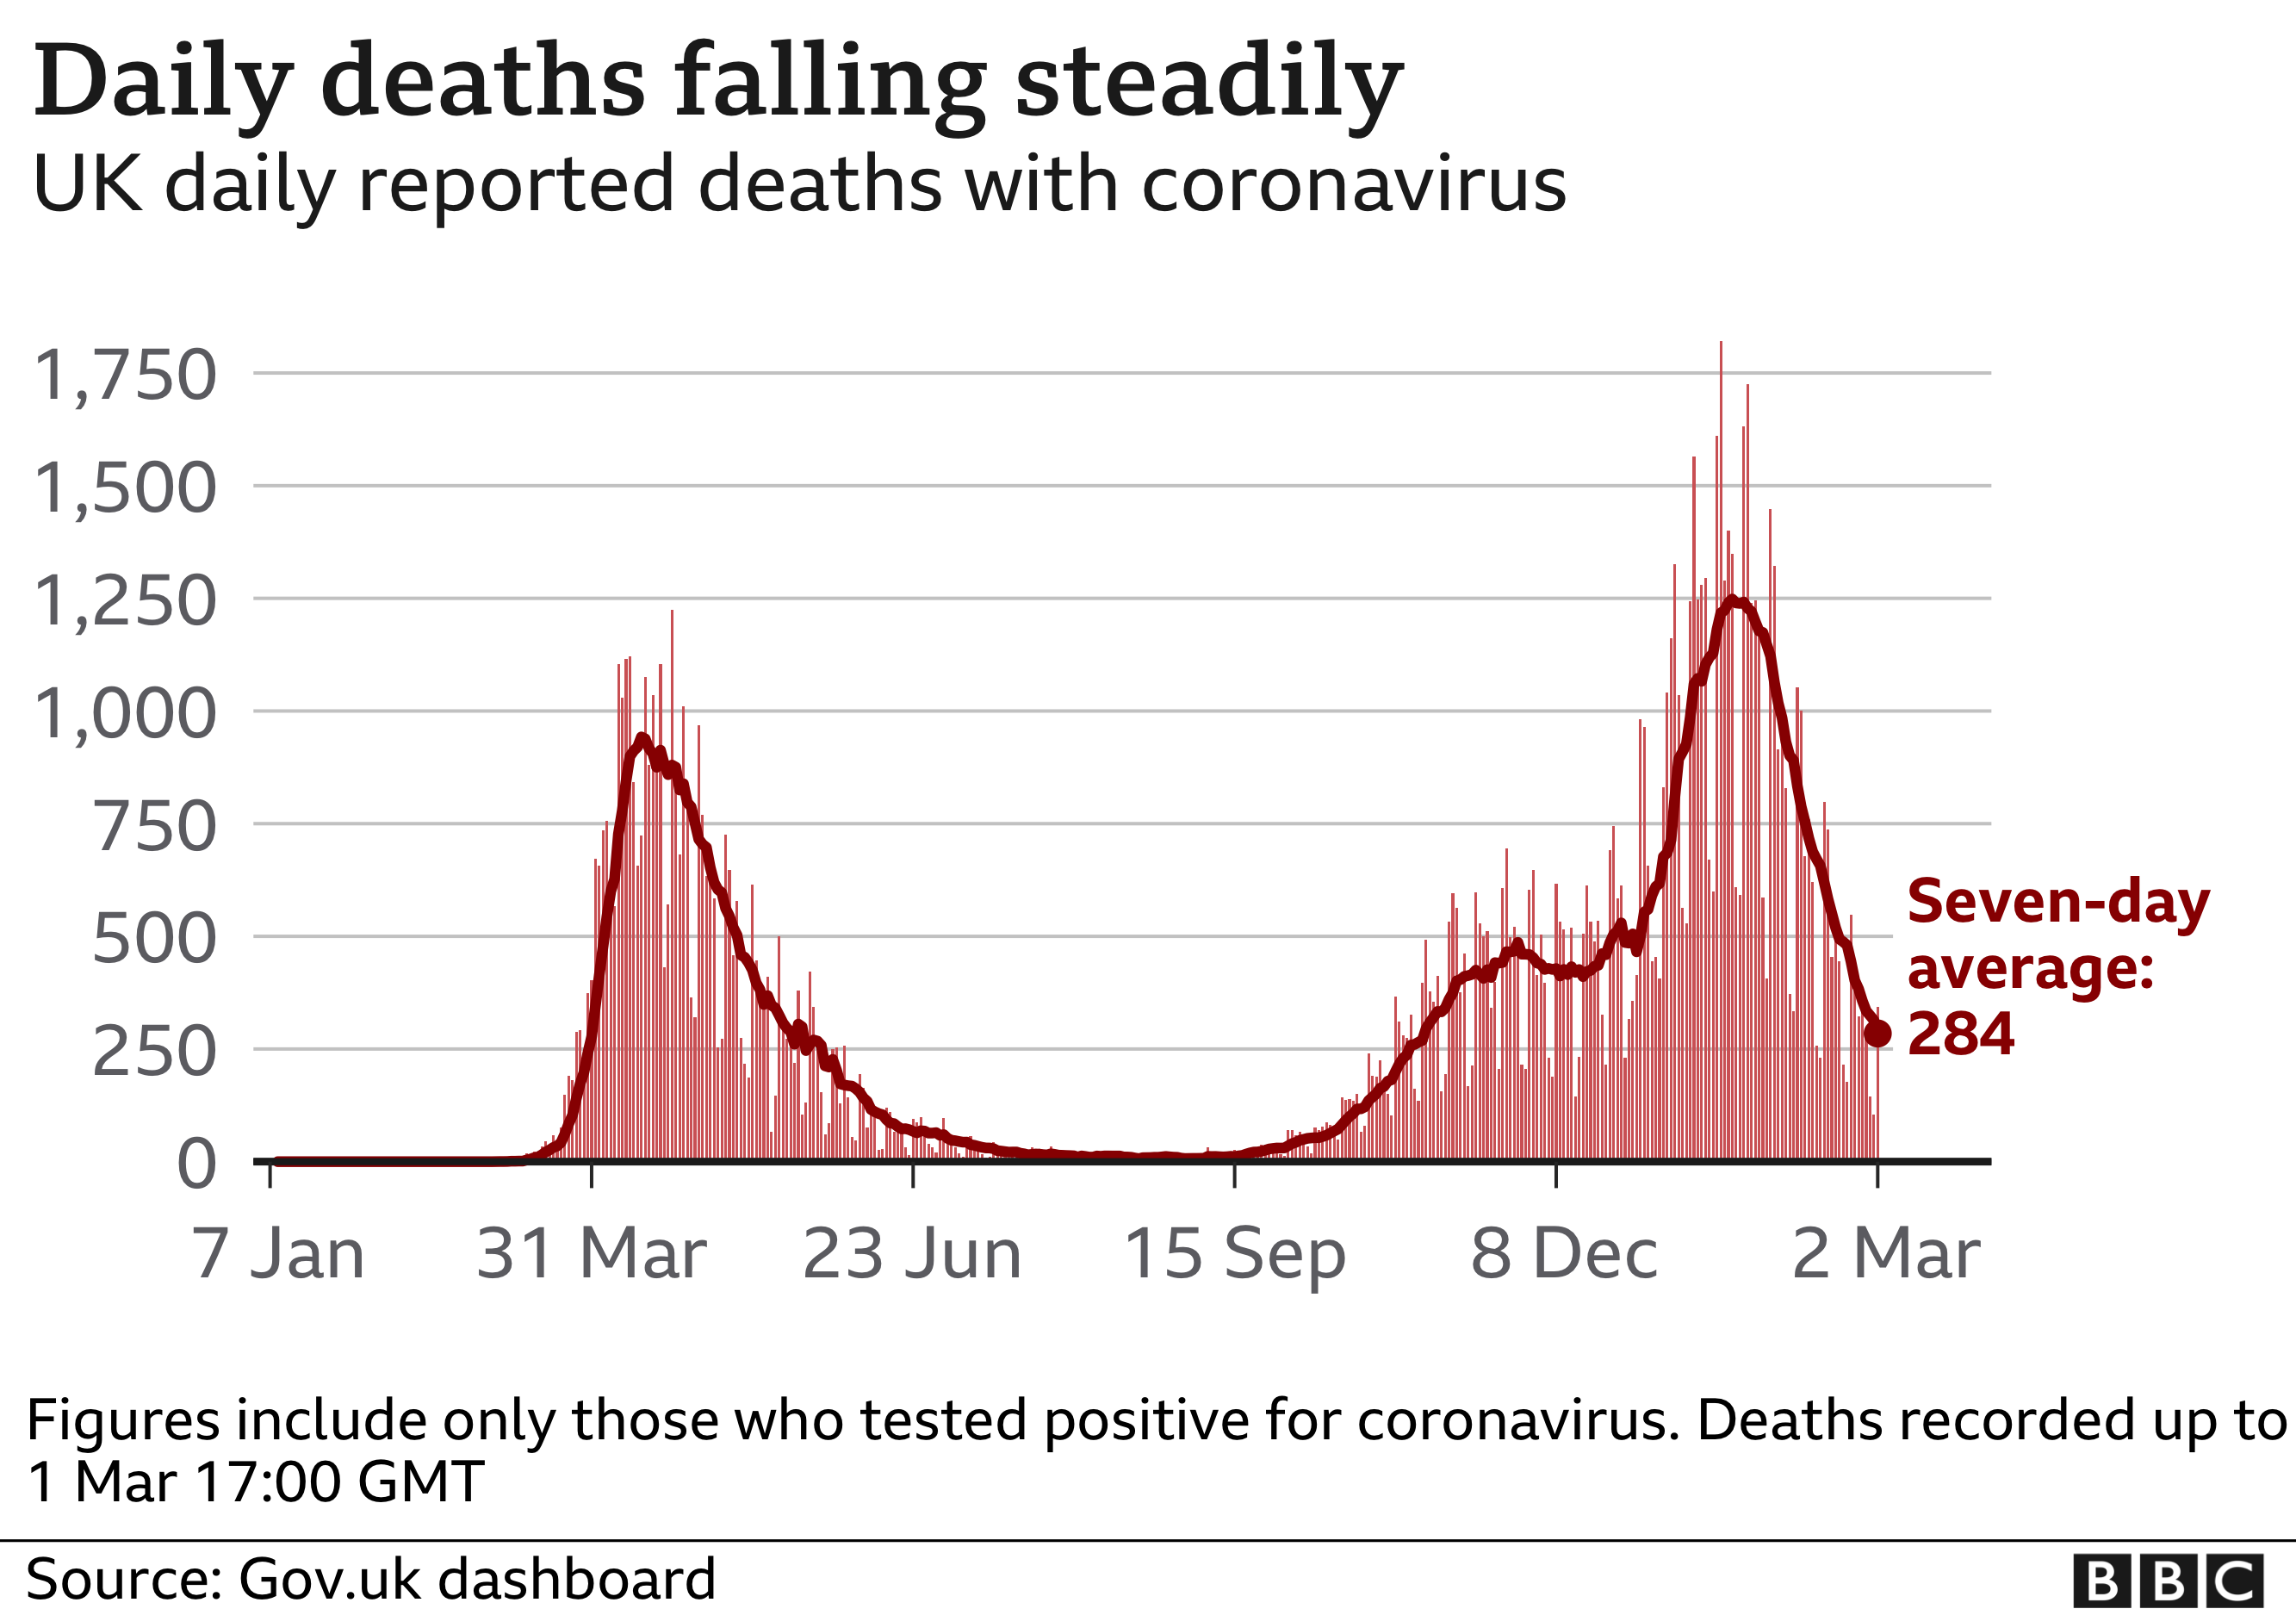 Chart showing daily deaths are falling steadily. Updated 2 Mar.